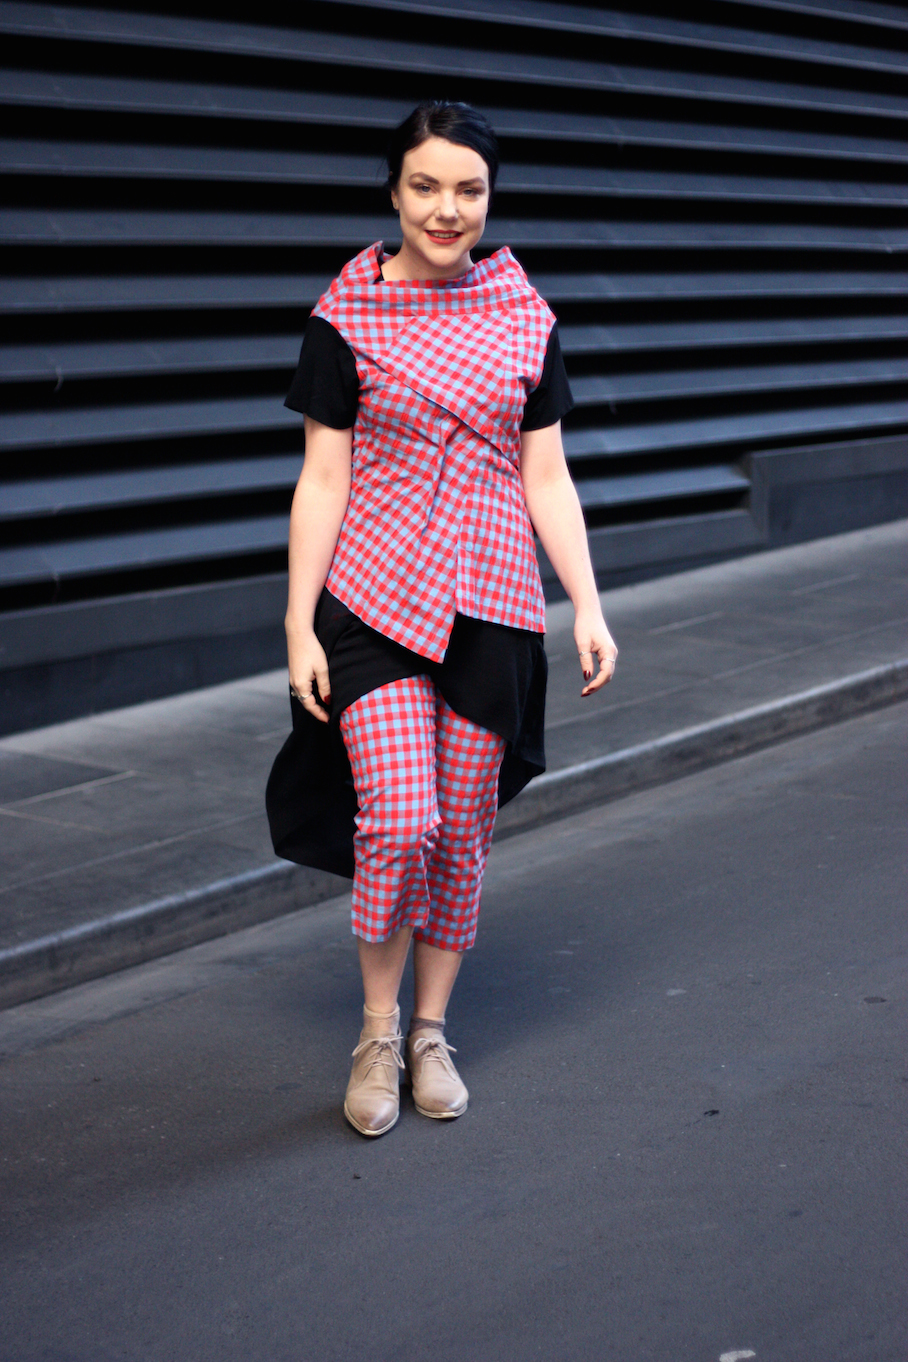 """Vic: Natalie Routen,  Retail Manager, Little Bourke St. """"I dress for how I feel today. I love embracing my eclectic side!"""" <a href=""""http://www.marythamphotography.weebly.com/"""" target=""""_blank""""> Photo: Mary Tham </a>"""